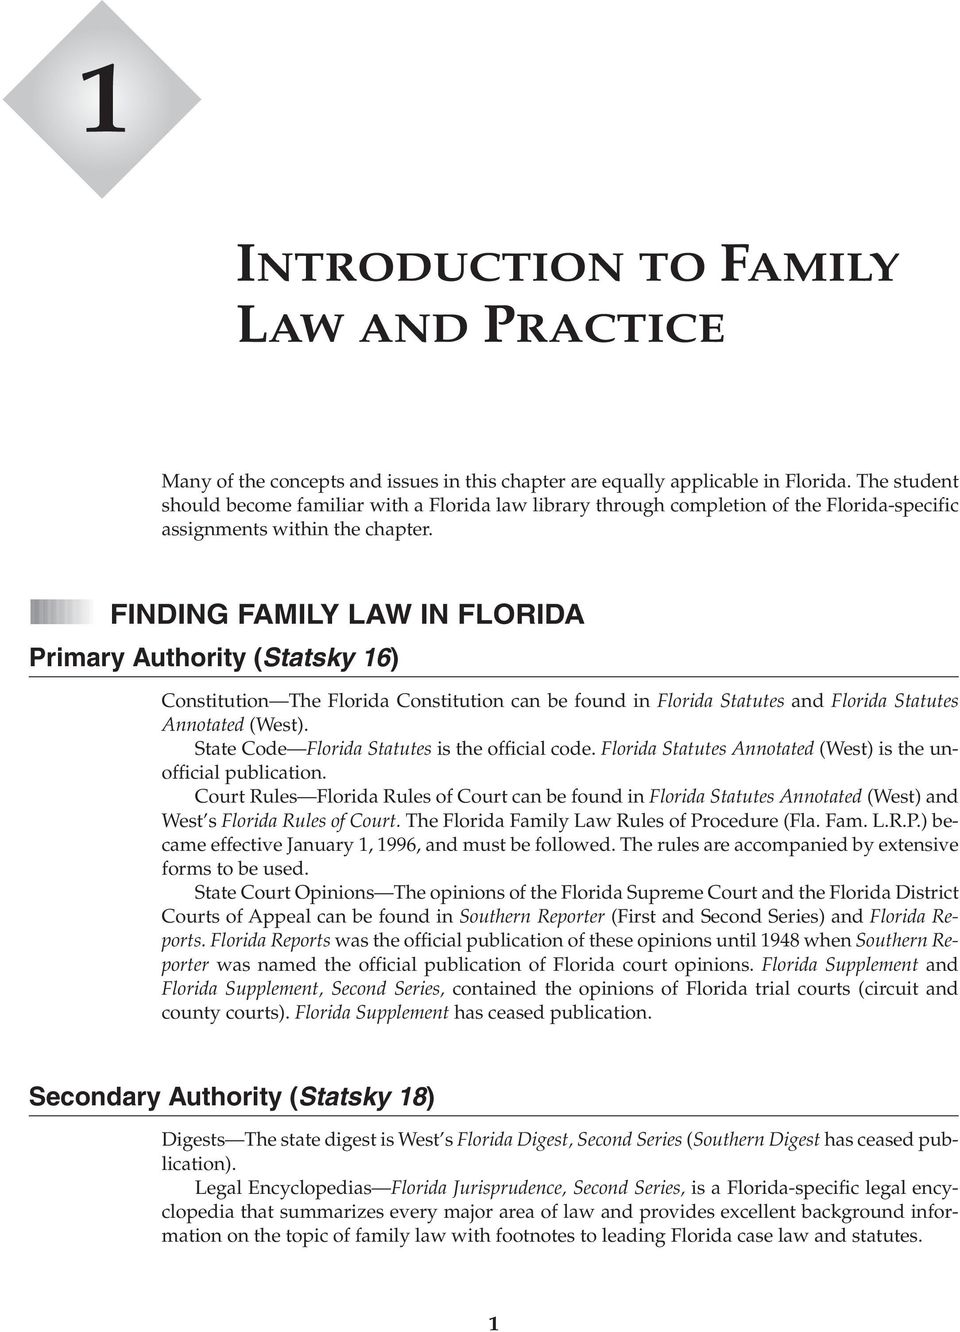 FINDING FAMILY LAW IN FLORIDA Primary Authority (Statsky 16) Constitution The Florida Constitution can be found in Florida Statutes and Florida Statutes Annotated (West).